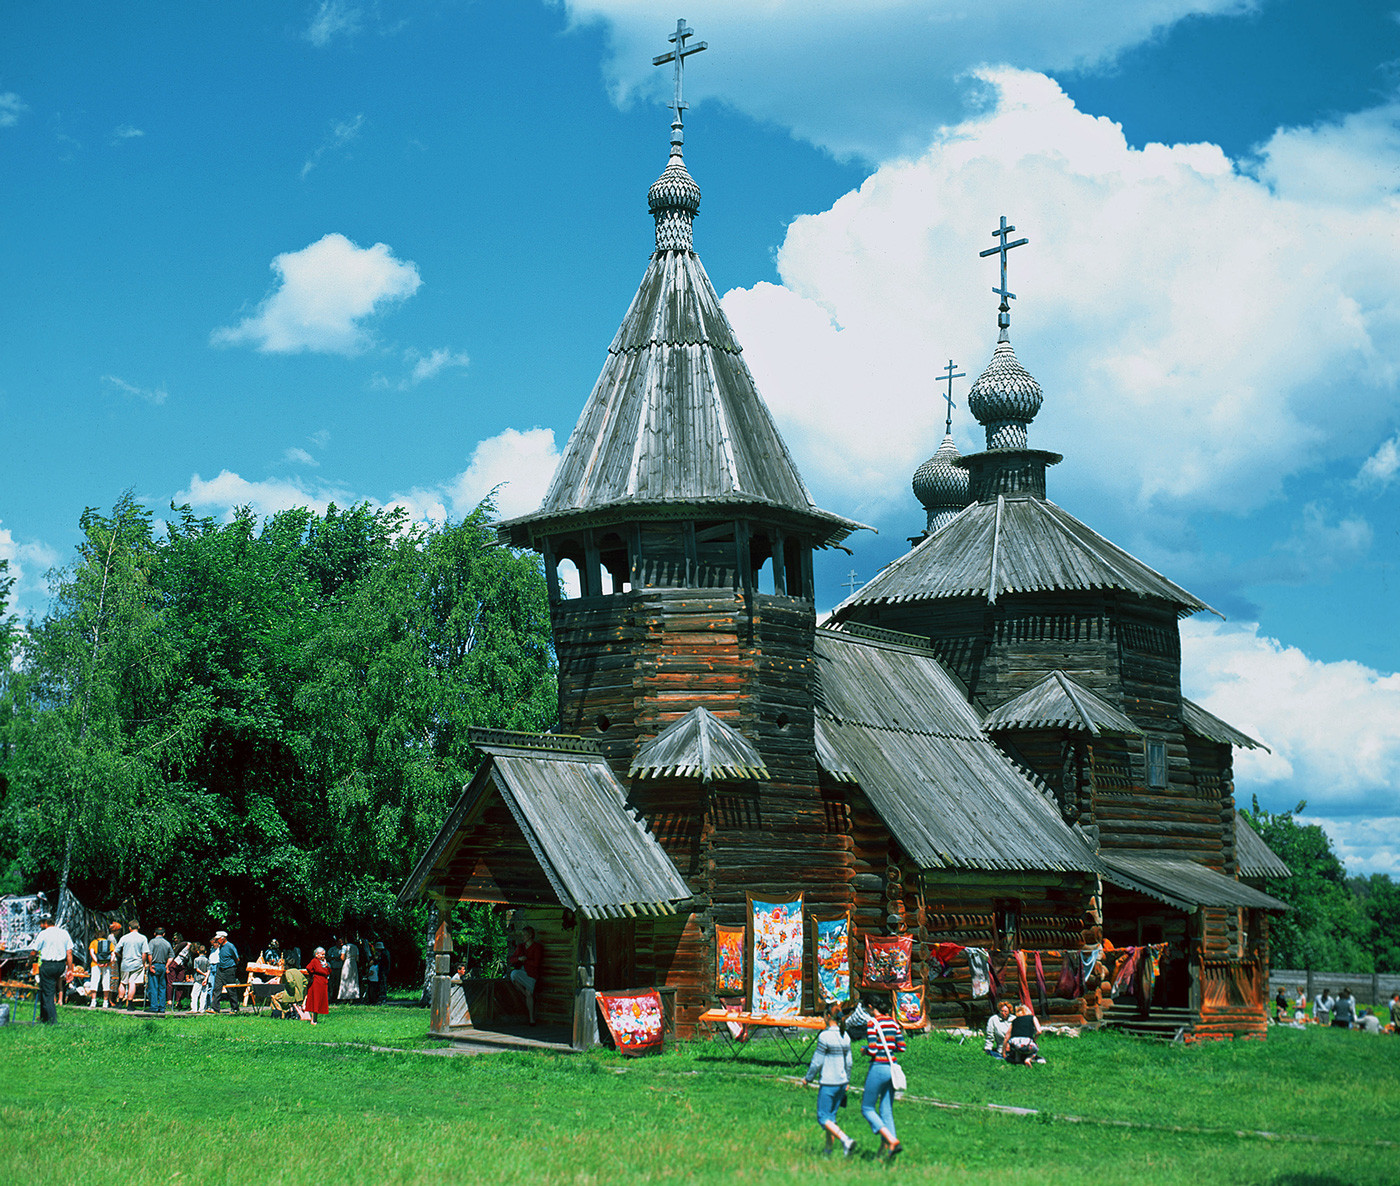 The Resurrection church,1776, at the Museum of Wooden Architecture